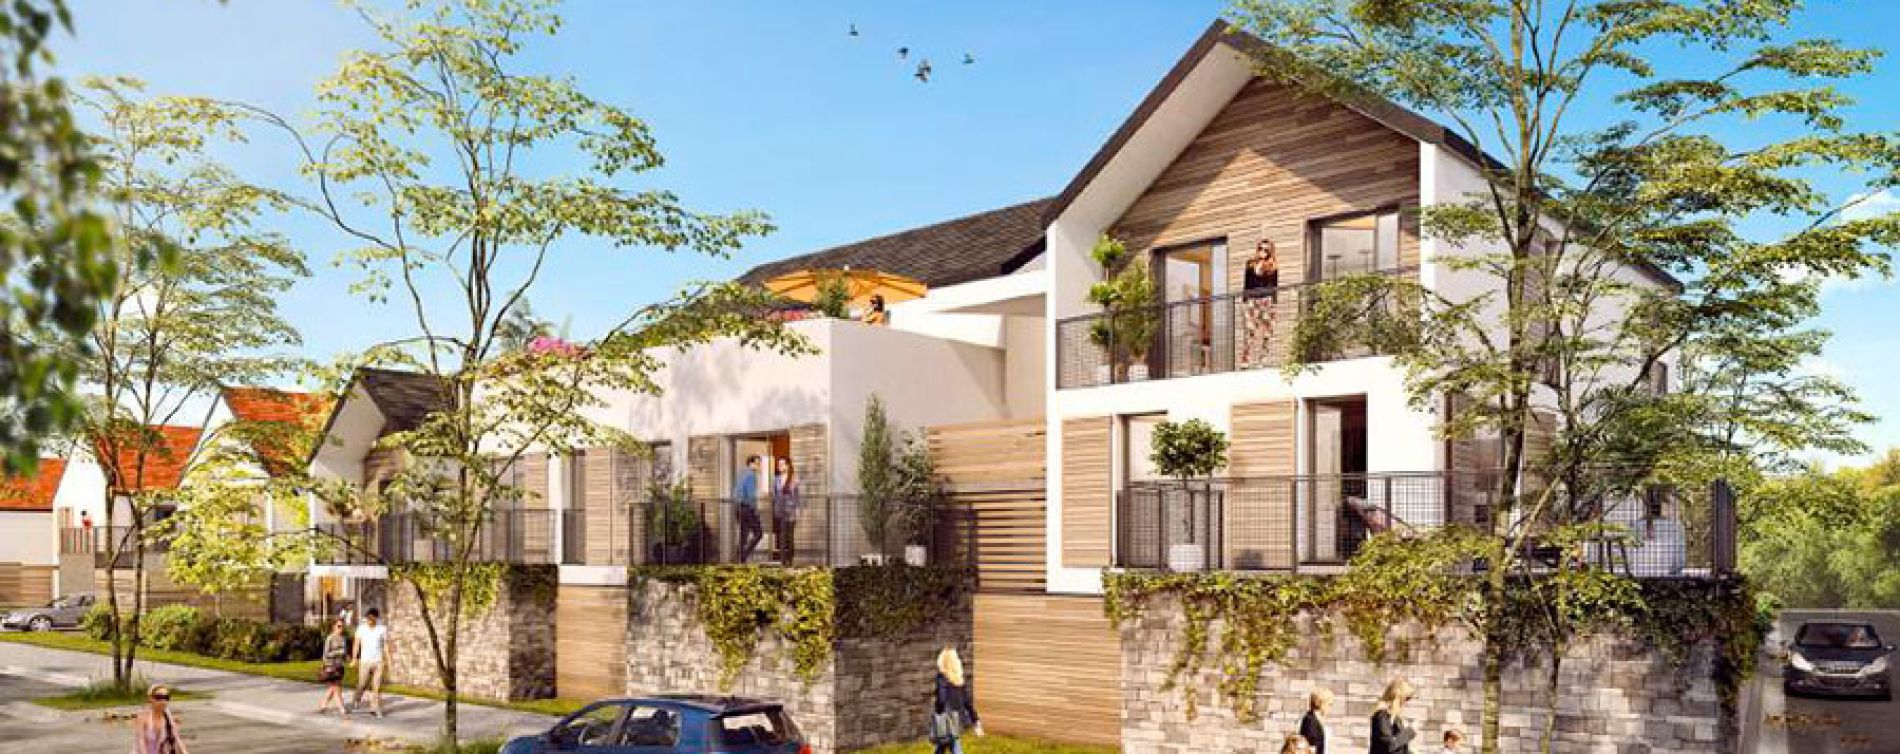 L 39 acionna ormoy programme immobilier neuf n 213784 for Immobilier neuf idf